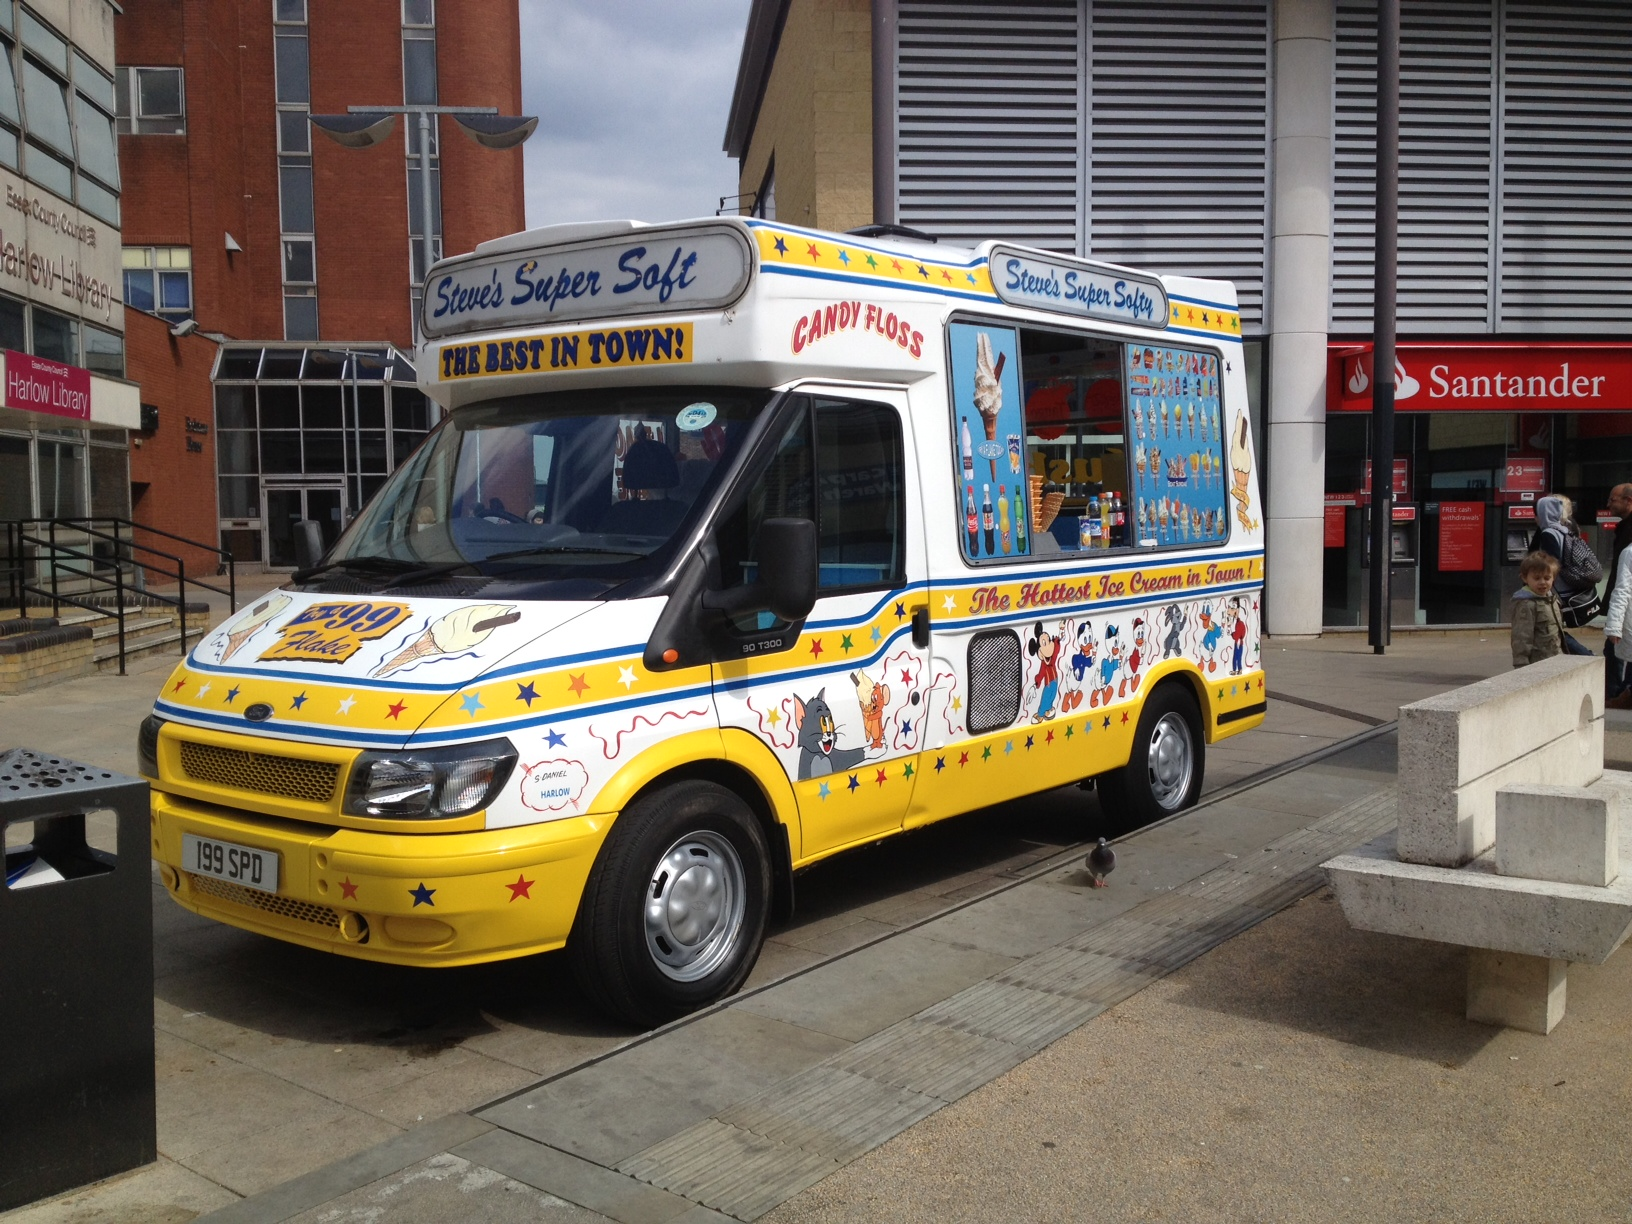 Hire an ice cream van for your event